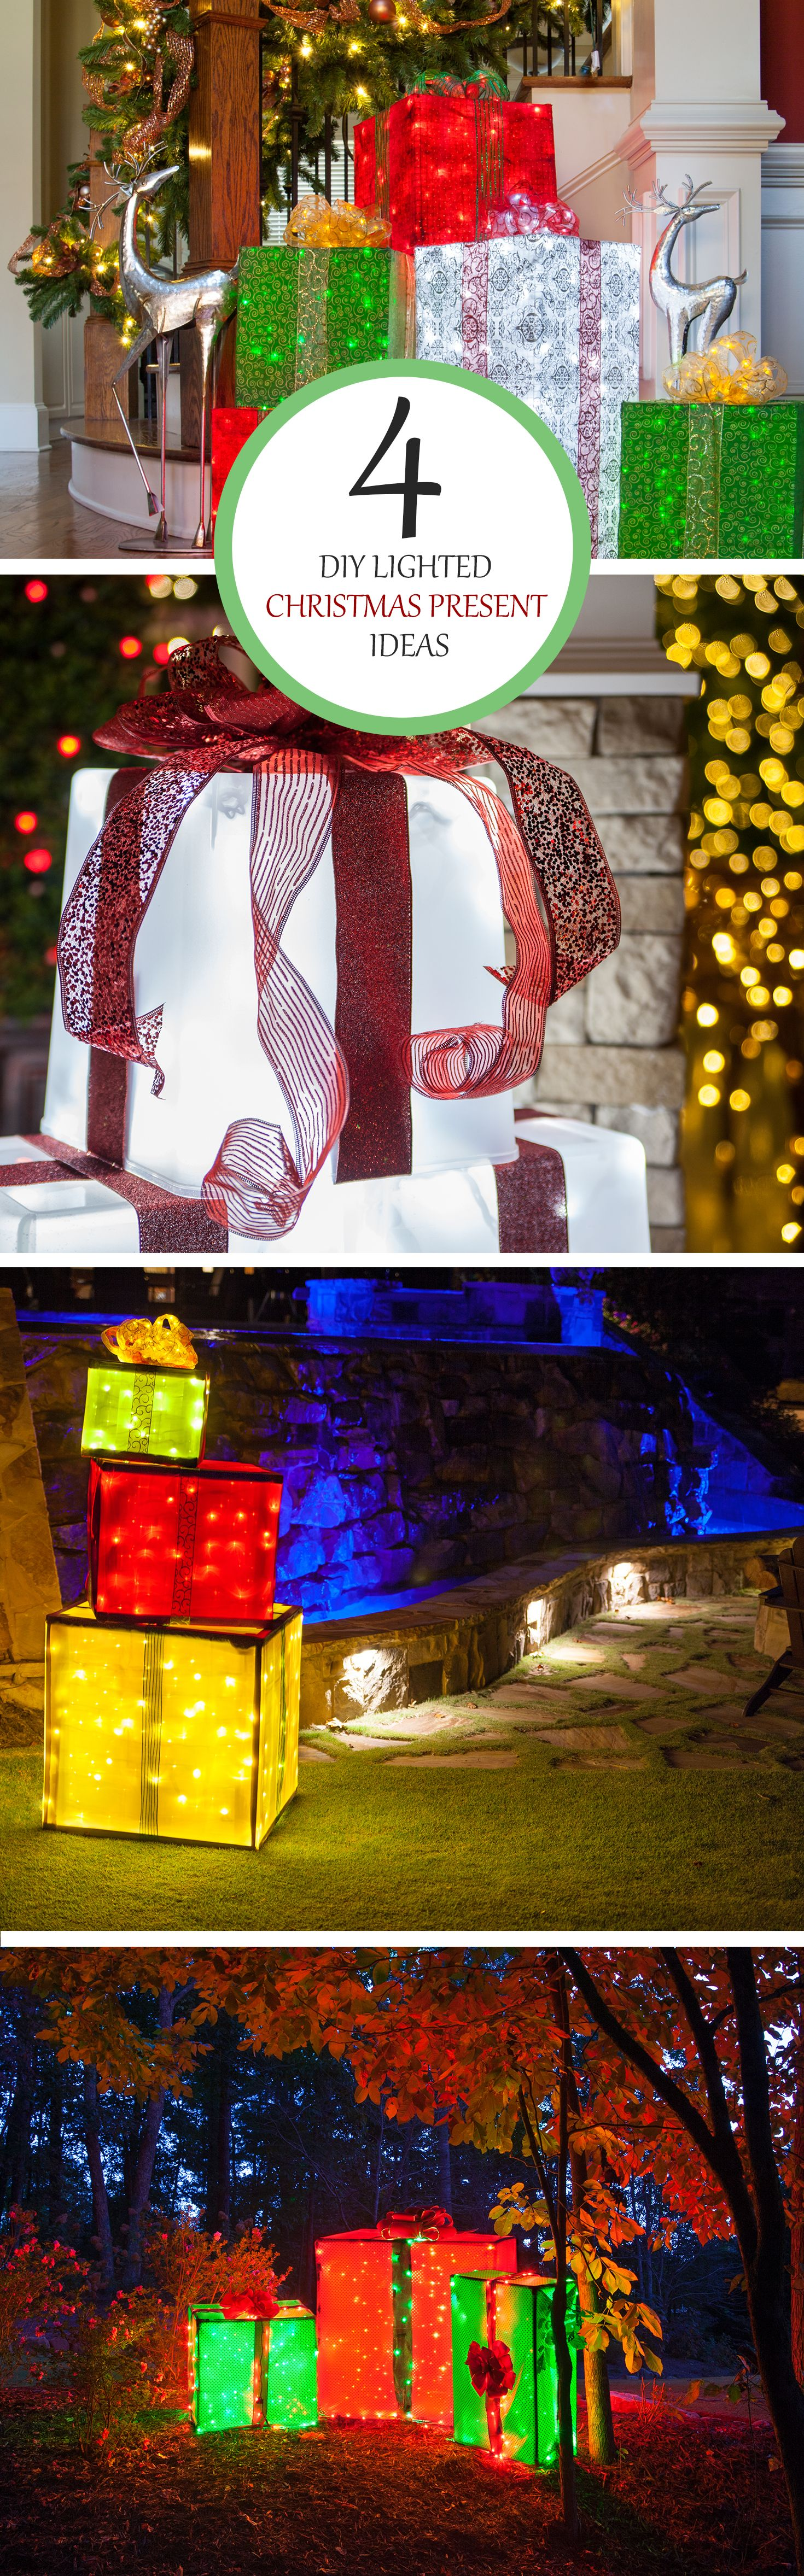 Diy christmas decorations 4 lighted gift boxes outdoor christmas create lighted gift boxes to use as outdoor christmas yard decorations by using basic materials mozeypictures Gallery